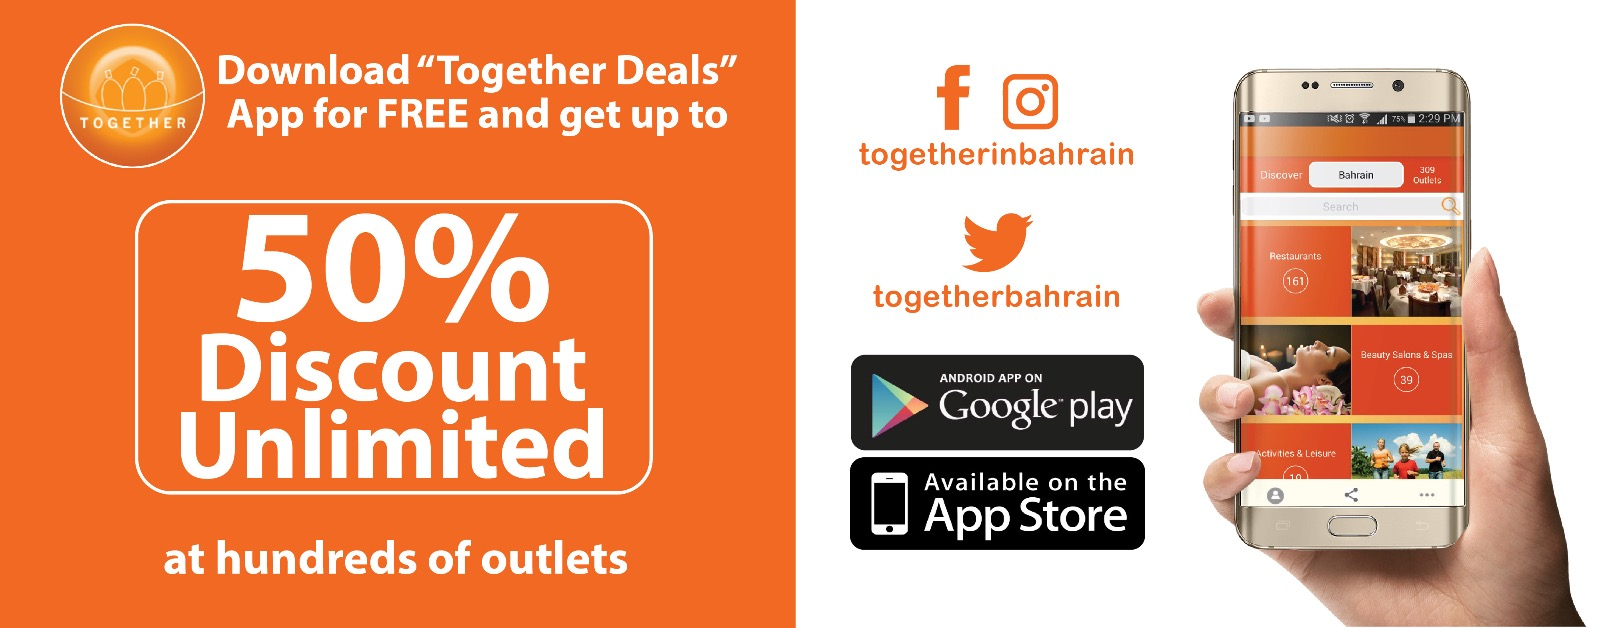 1-together-deals-app